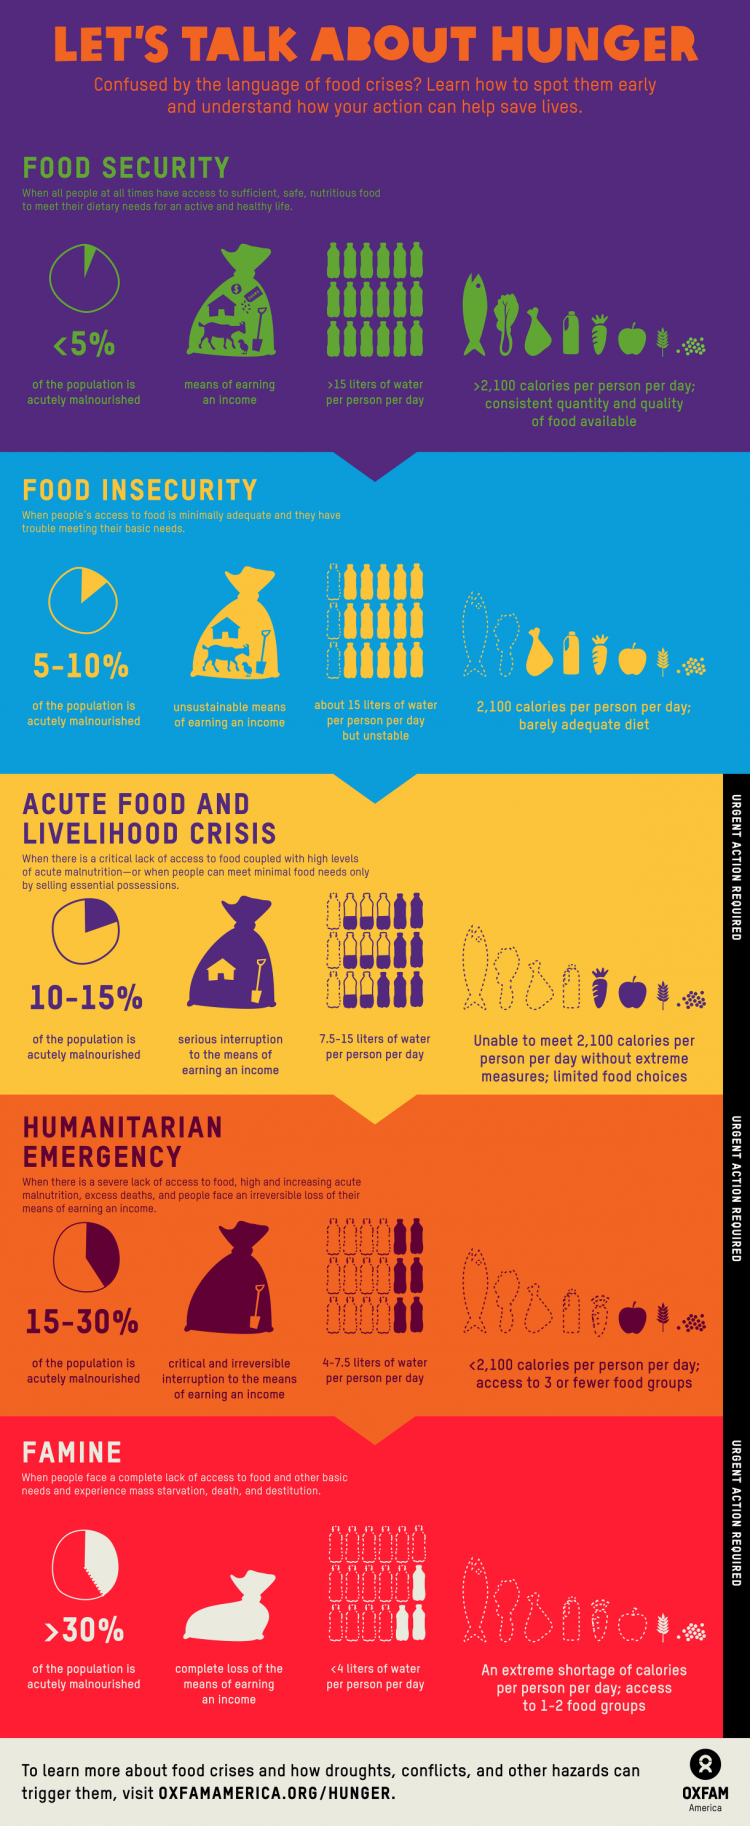 Oxfam America Infographic: Let's talk about hunger